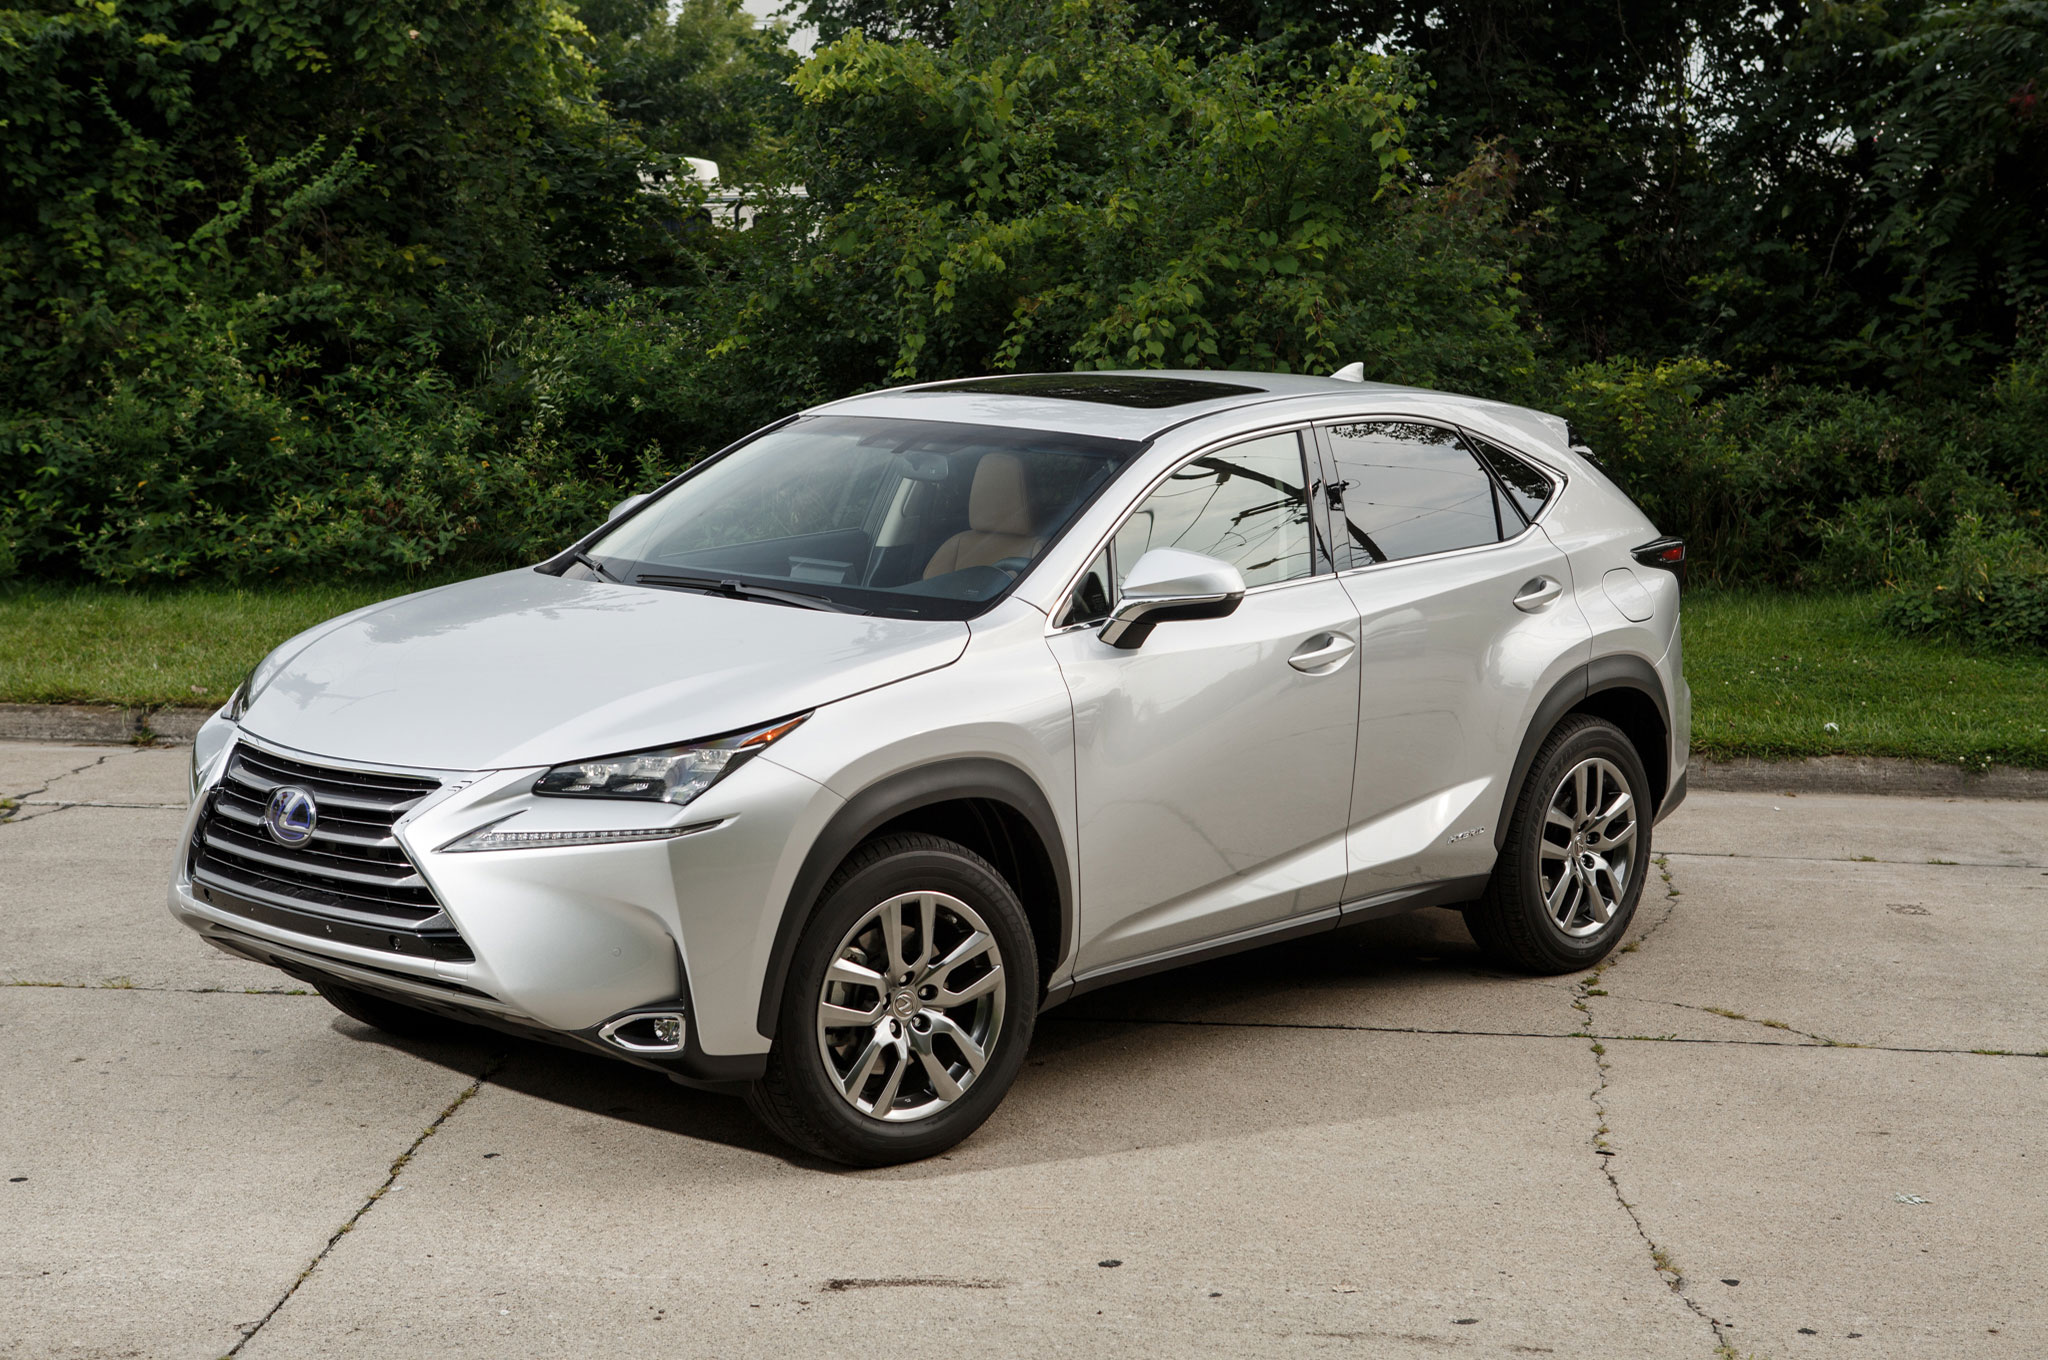 2015 Lexus NX 300h Front Three Quarter View 2